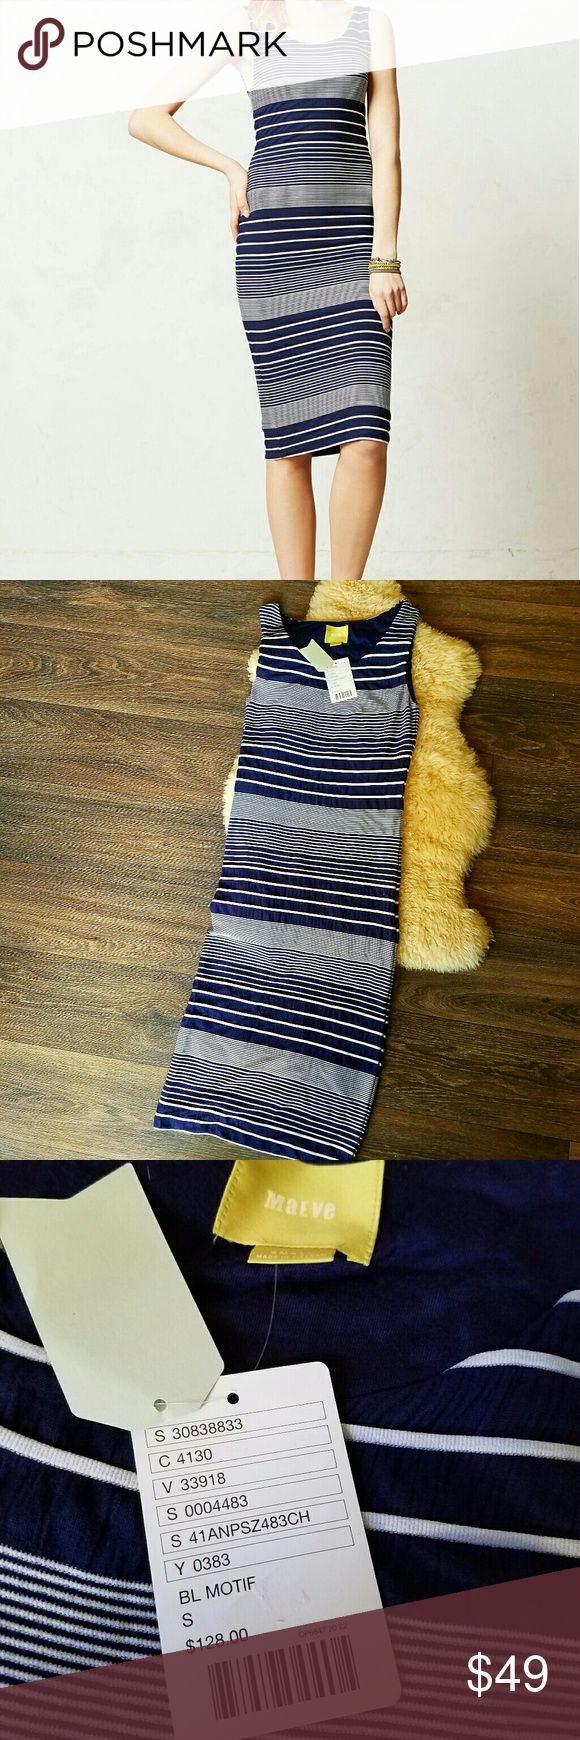 NWT Maeve Edisto Column Midi Navy Stripe Dress Perfectly new with tags from Anthropologie! This Navy and white stripe dress is textured and feels so well-made. Offers welcome! Anthropologie Dresses Midi